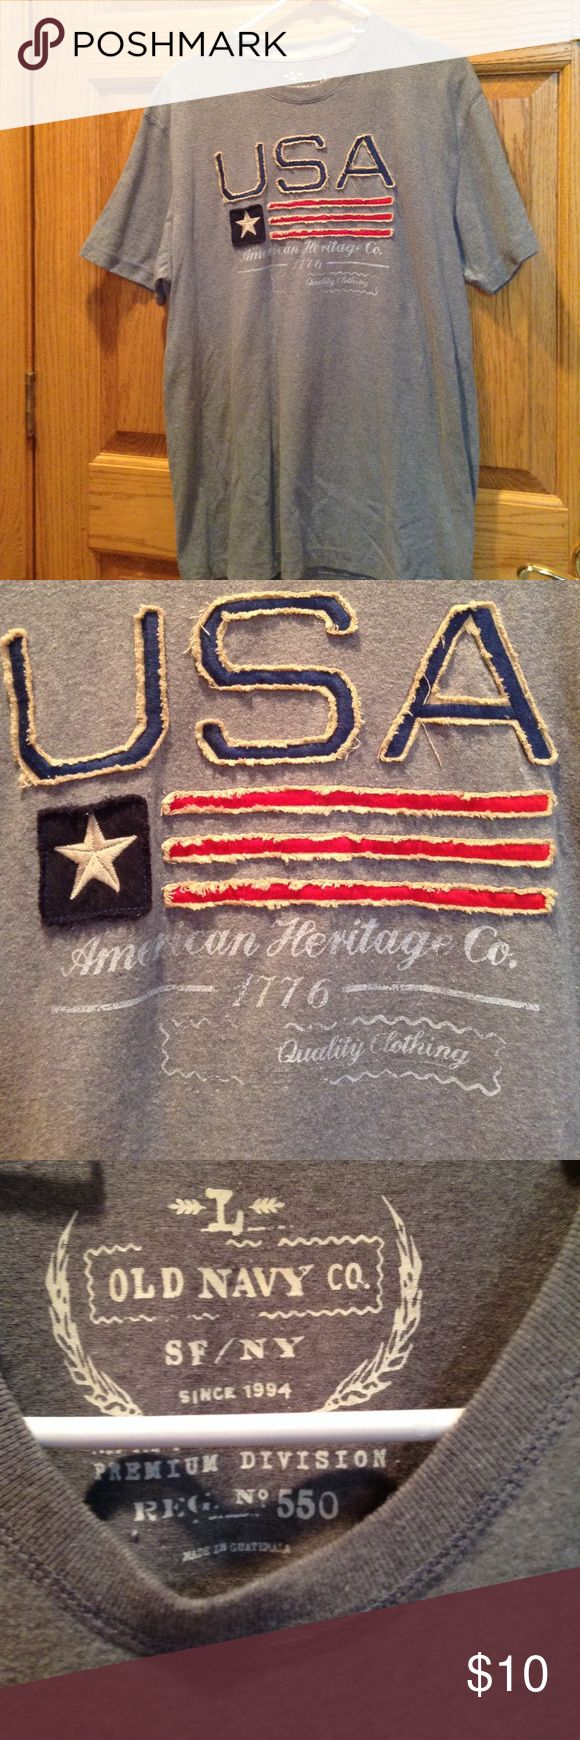 Old Navy USA tee Show off your red, white, and blue pride in this Old Navy USA tee-size Large. EUC. Old Navy Shirts Tees - Short Sleeve